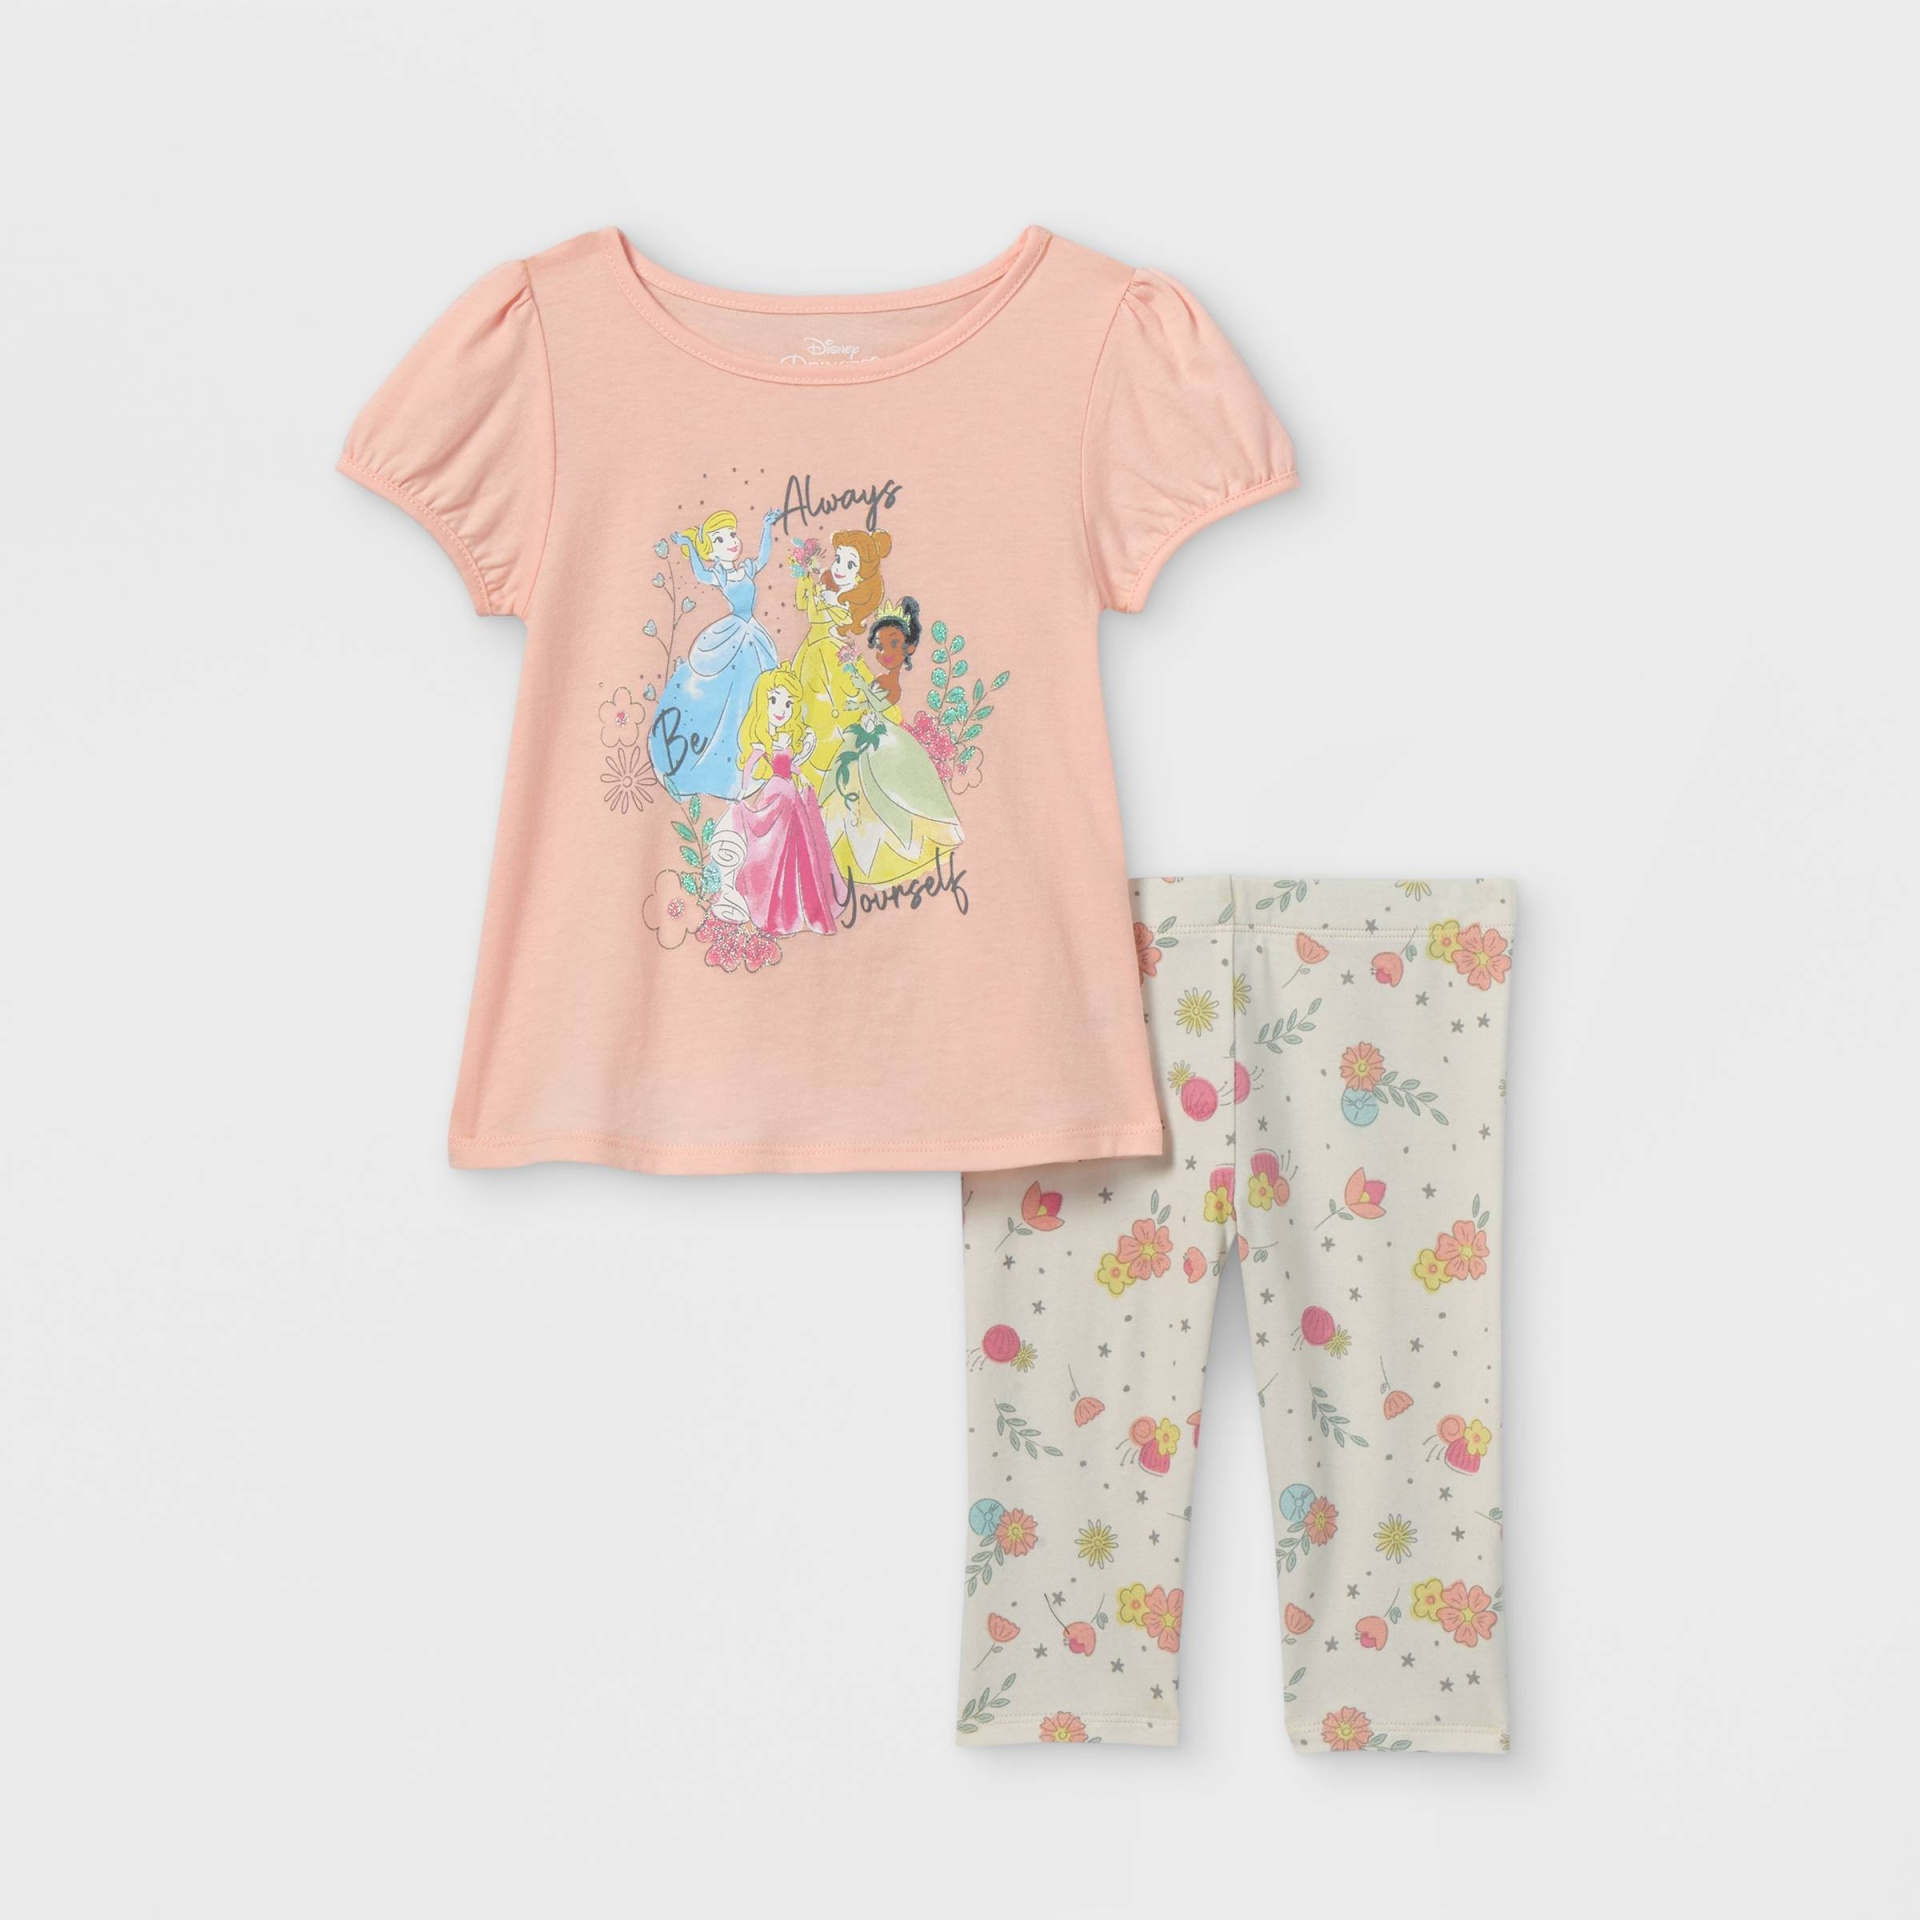 slide 1 of 3, Toddler Girls' Disney Princess 'Always Yourself' Short Sleeve Top and Bottom Set - Pink 5T,